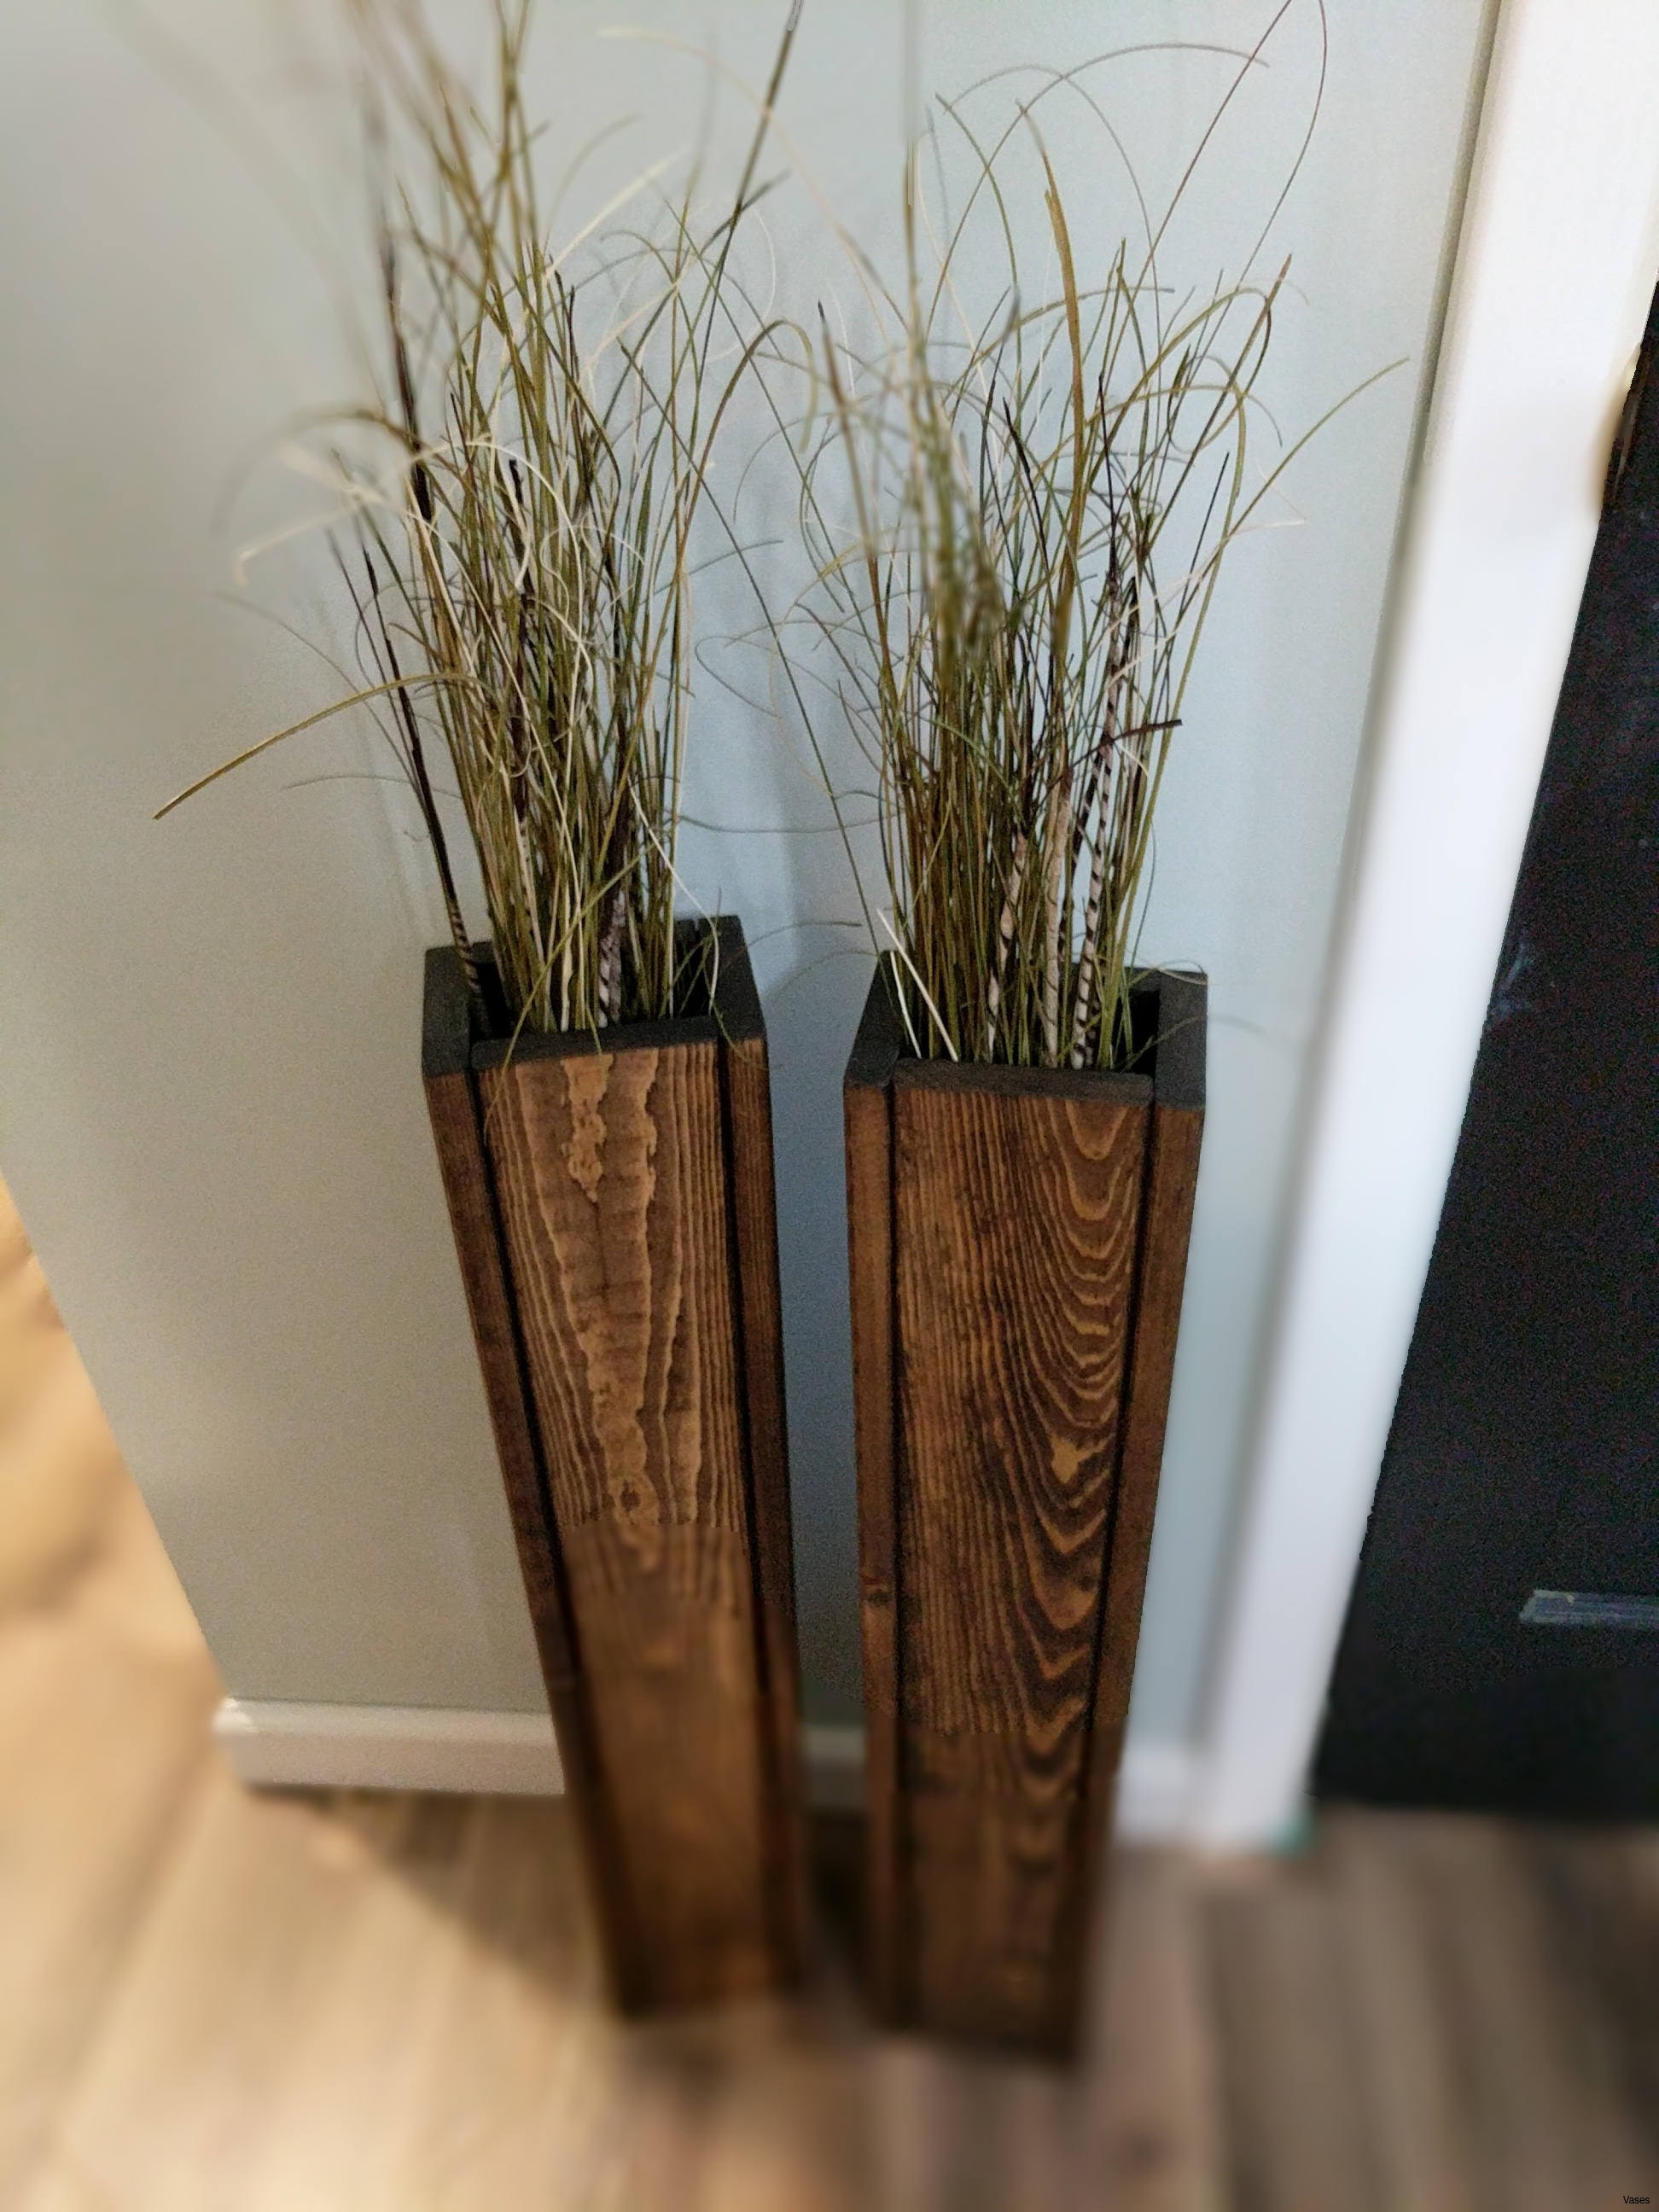 large floor vase with sticks of floor vase branches images 30 new decorative sticks for vases in floor vase branches pictures vases vase with twigs red sticks in a i 0d floor and lights